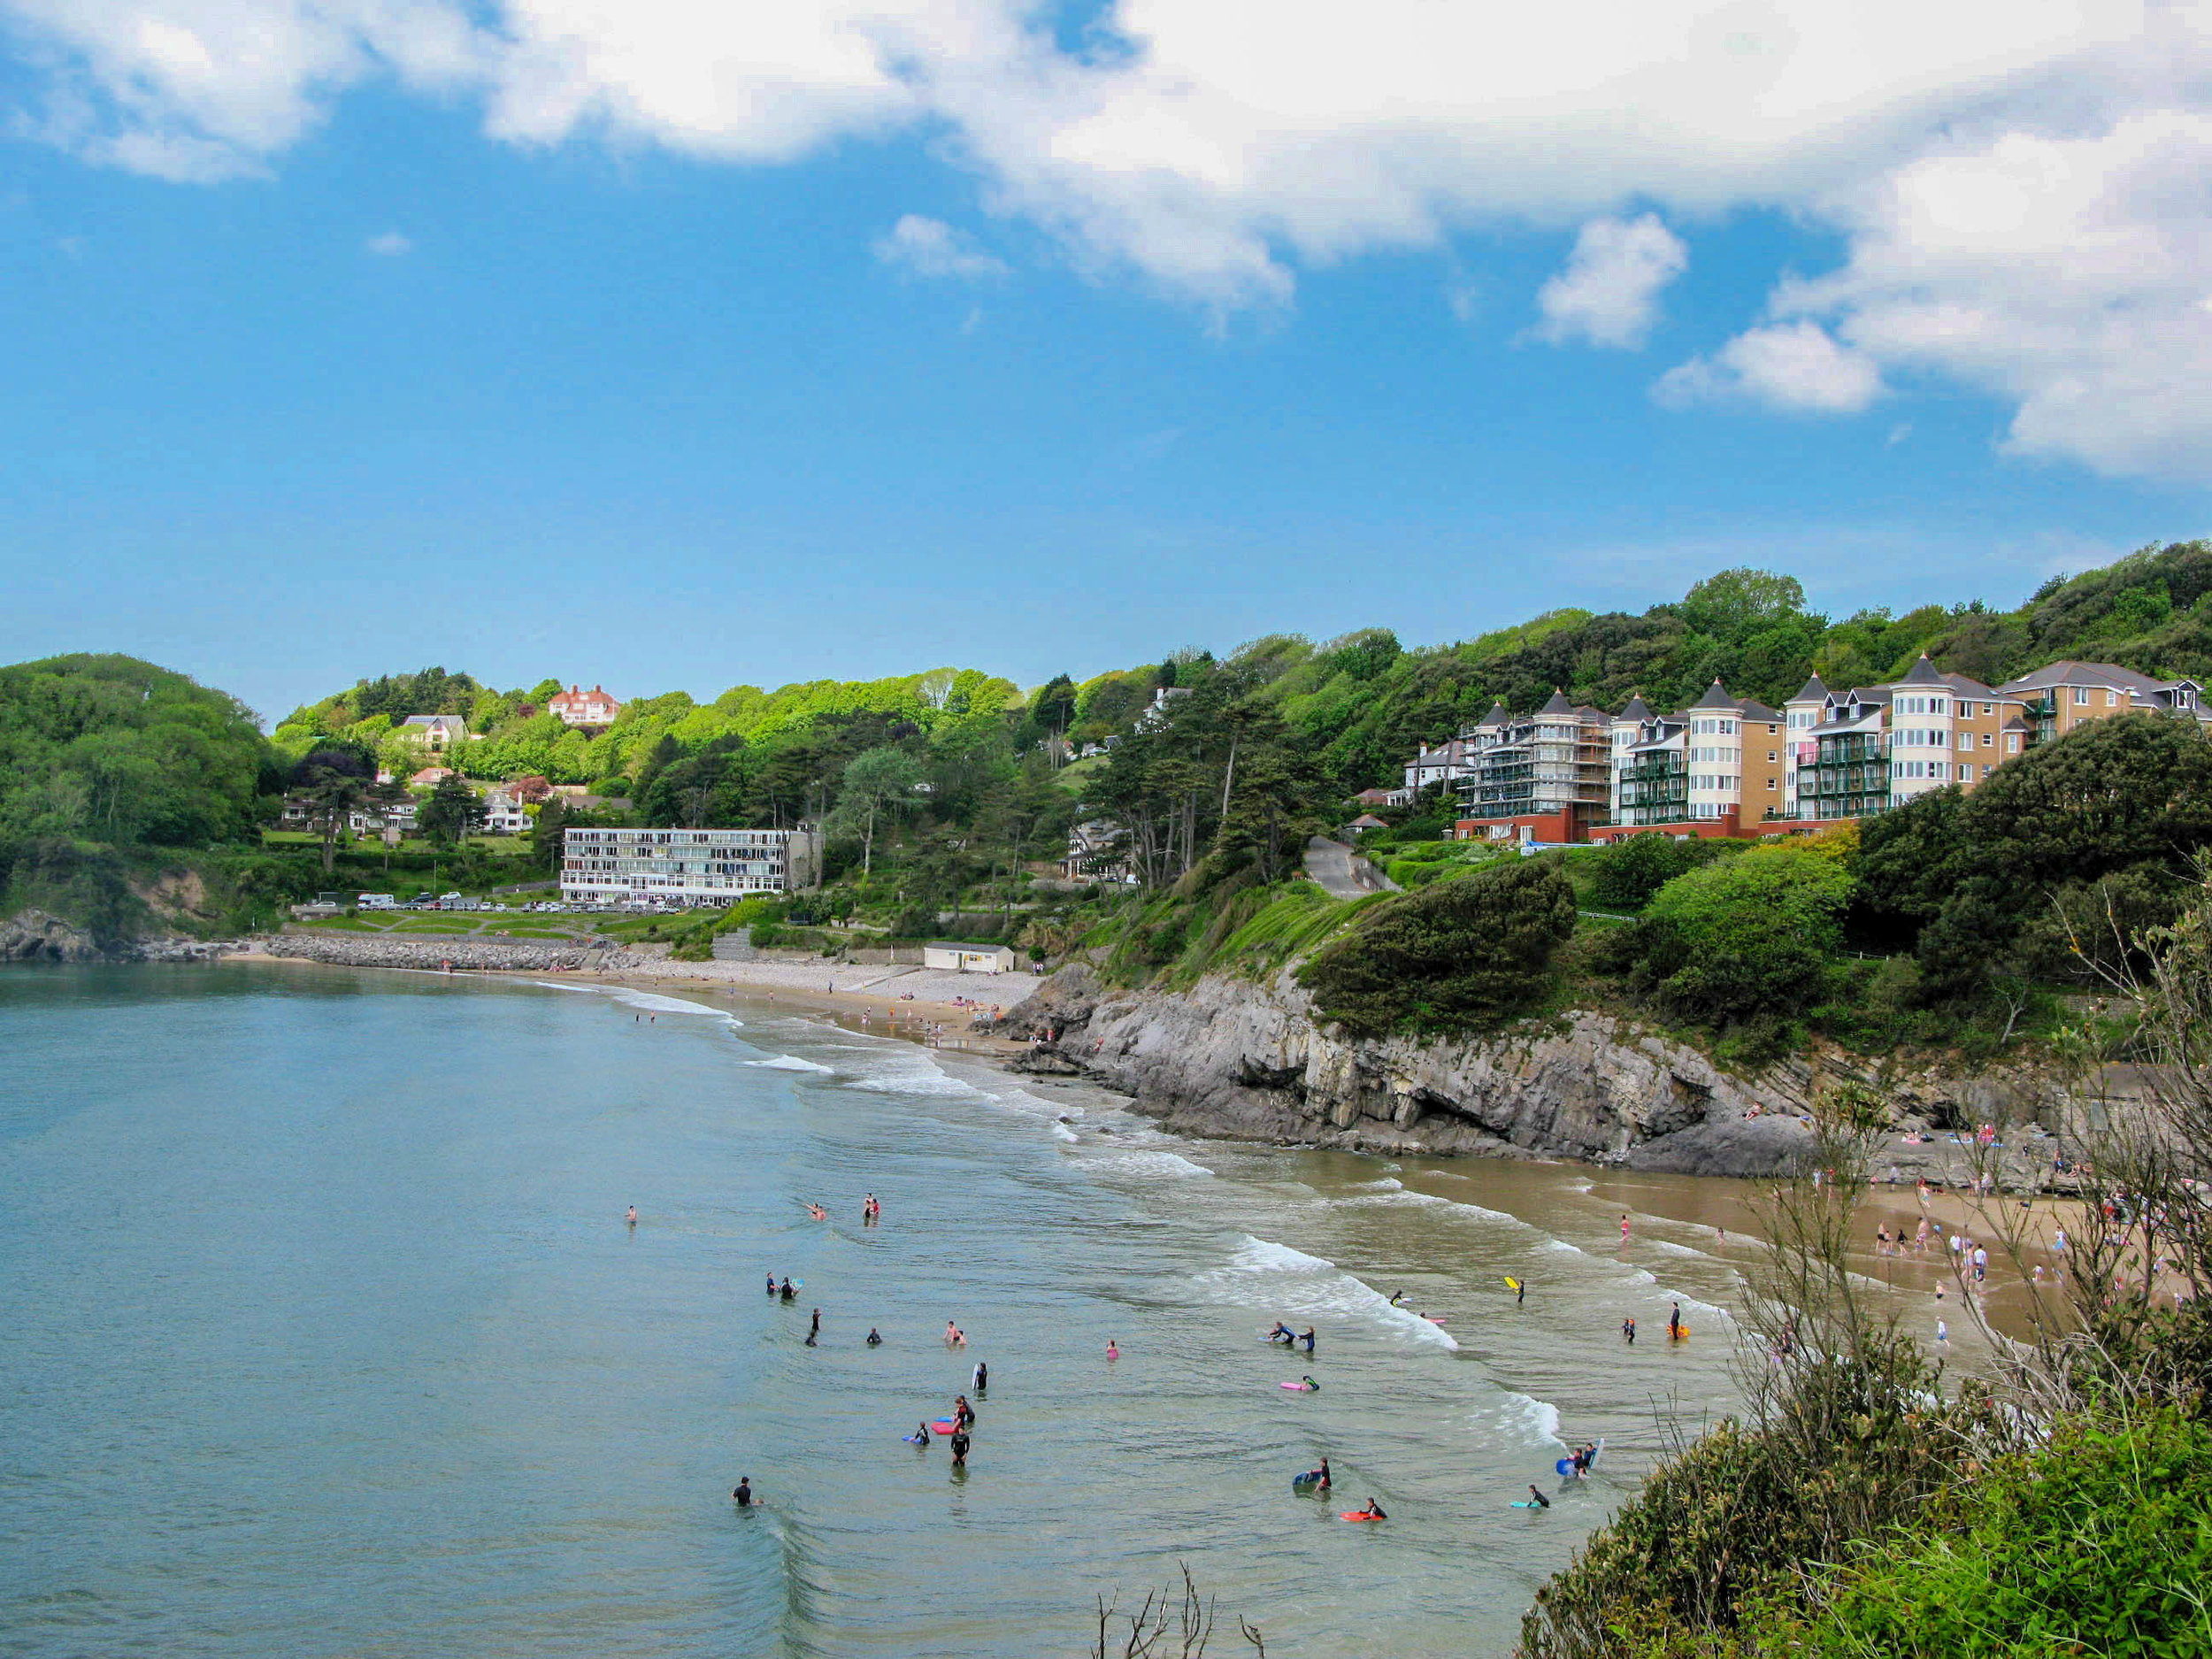 Caswell Bay